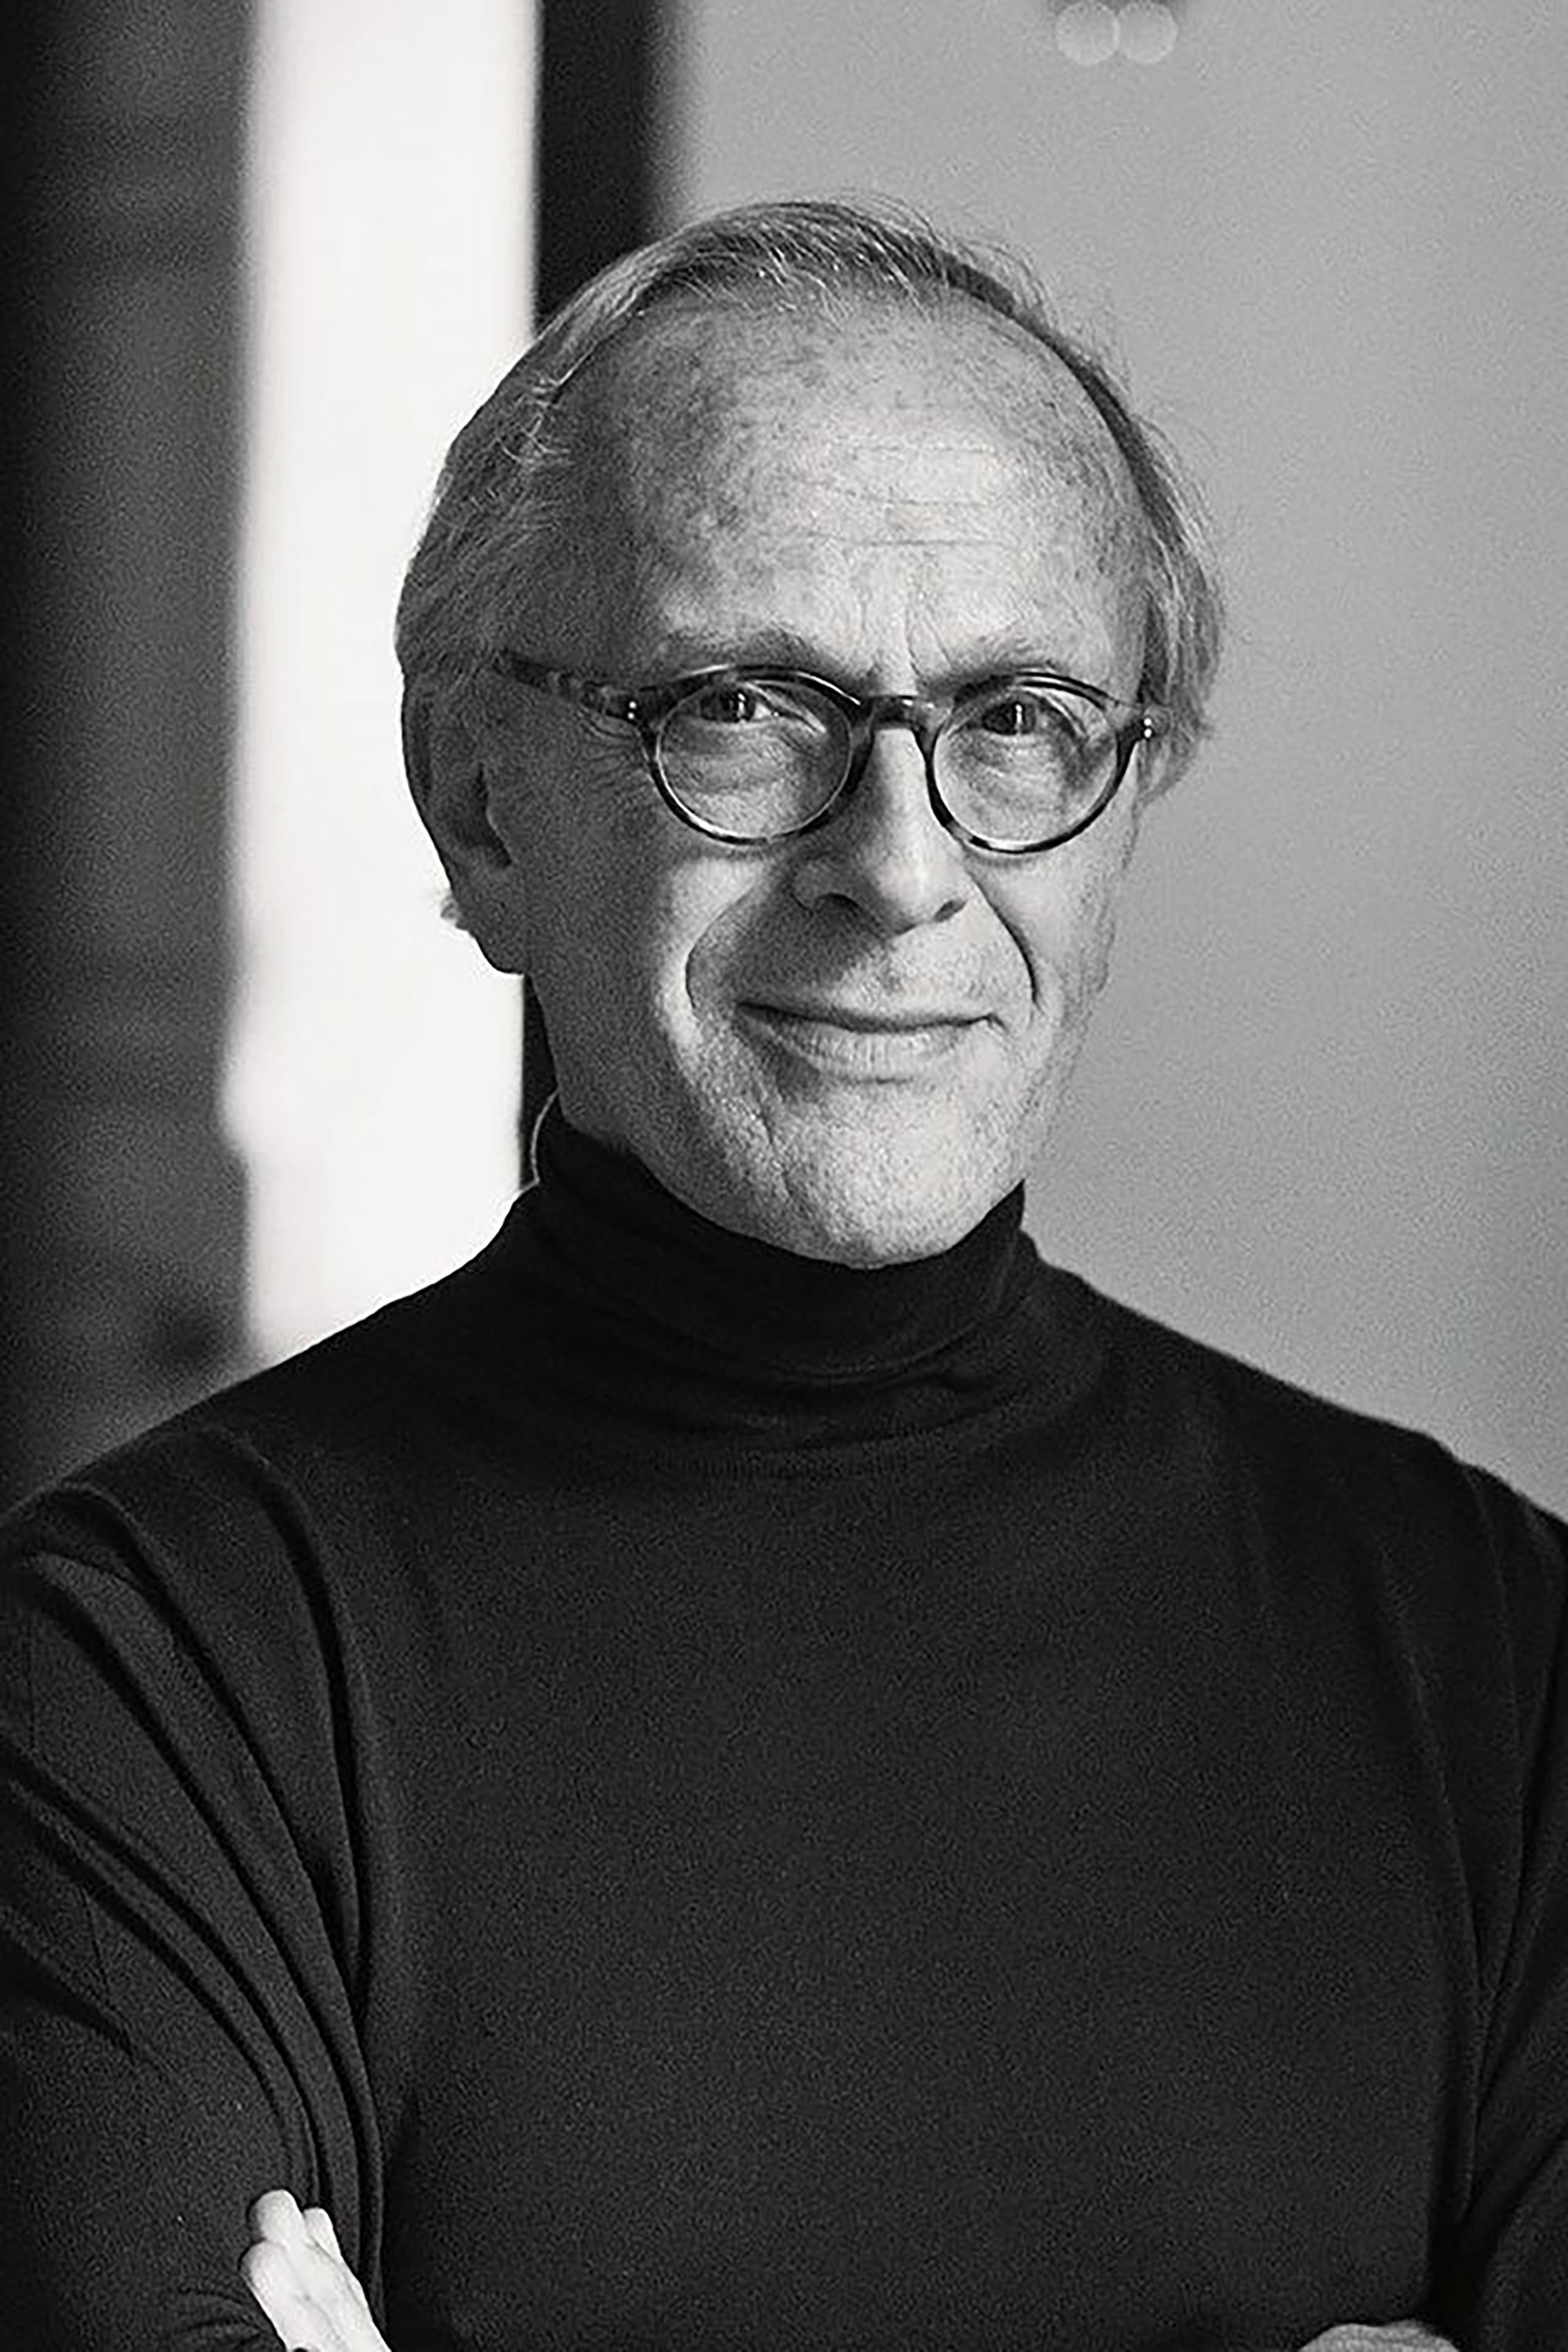 Christian Liaigre (1943-)